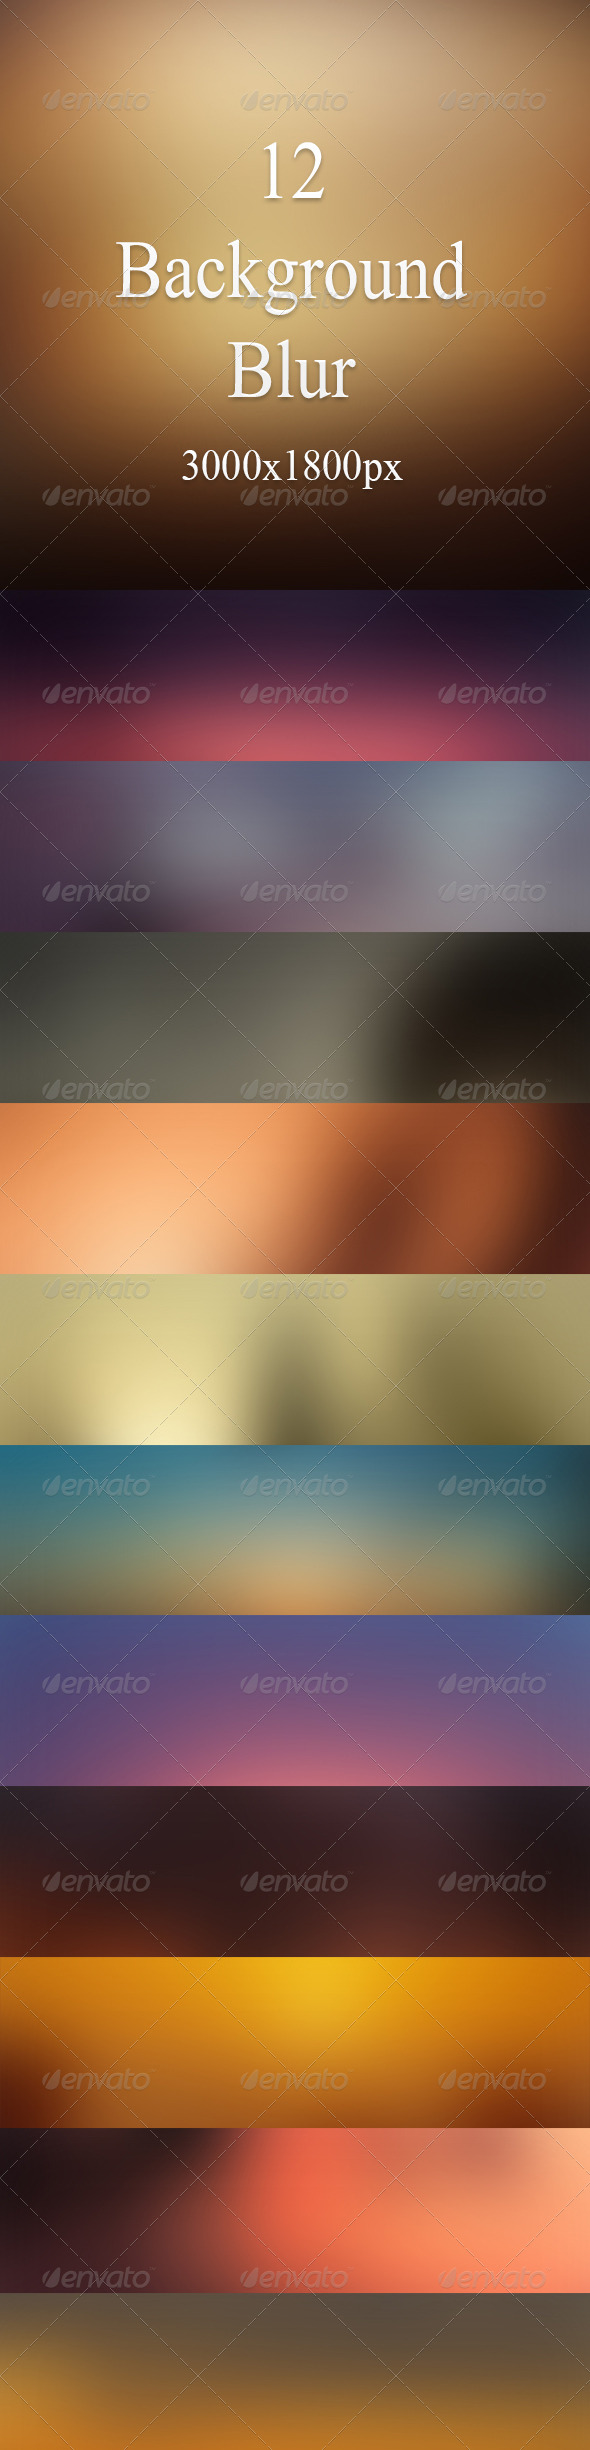 Background Blur - Backgrounds Graphics